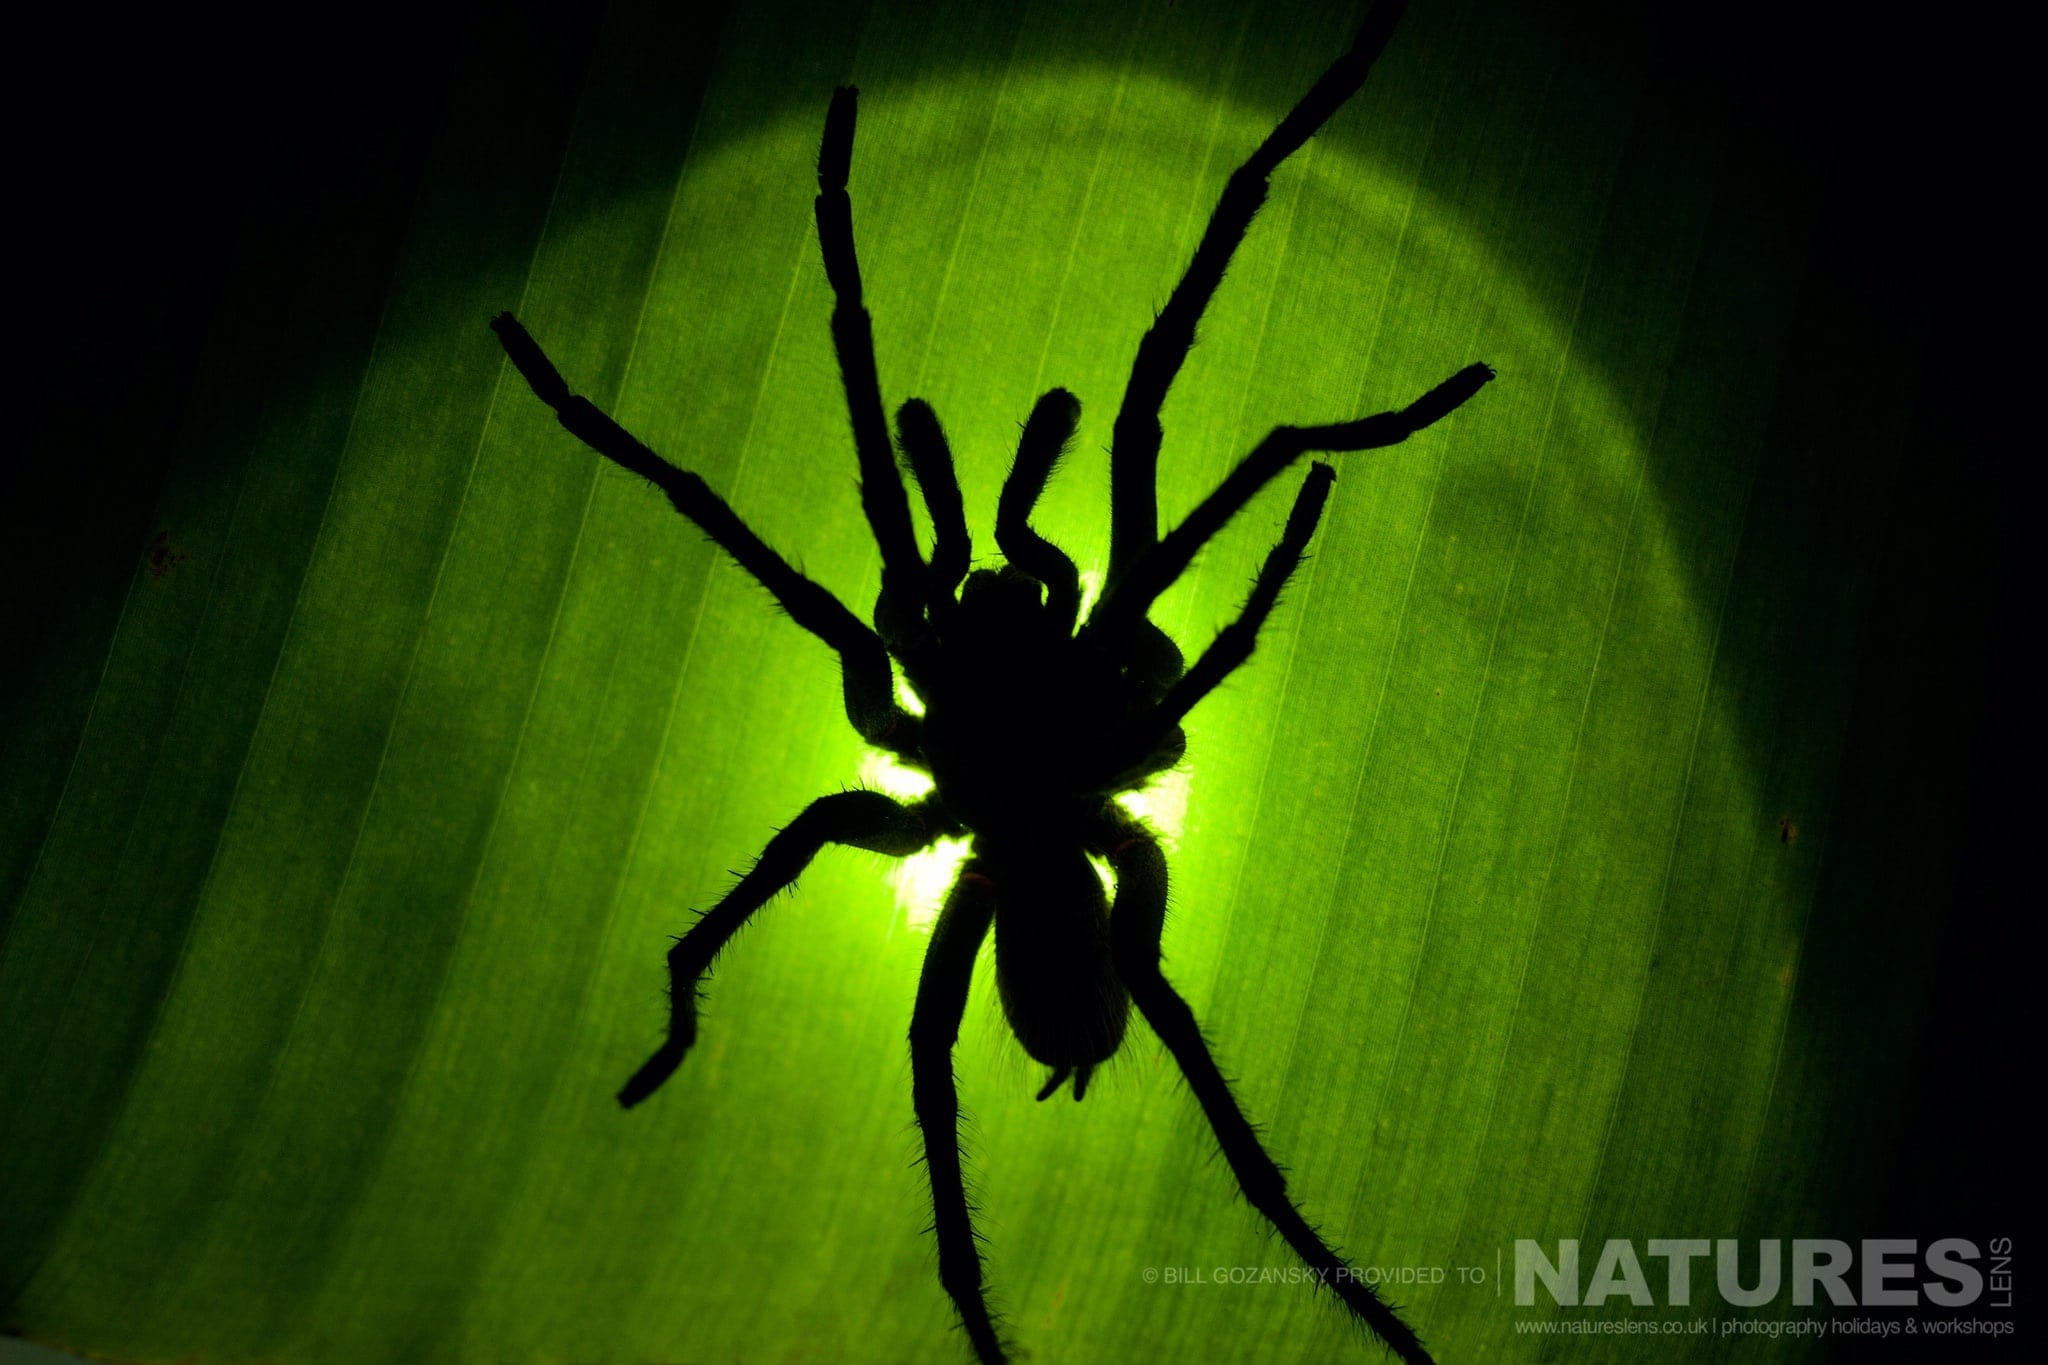 A Tarantula Backlit Through Leaf Photographed At One Of The Locations That Feature On The NaturesLens Wildlife Of Costa Rica Photography Holiday